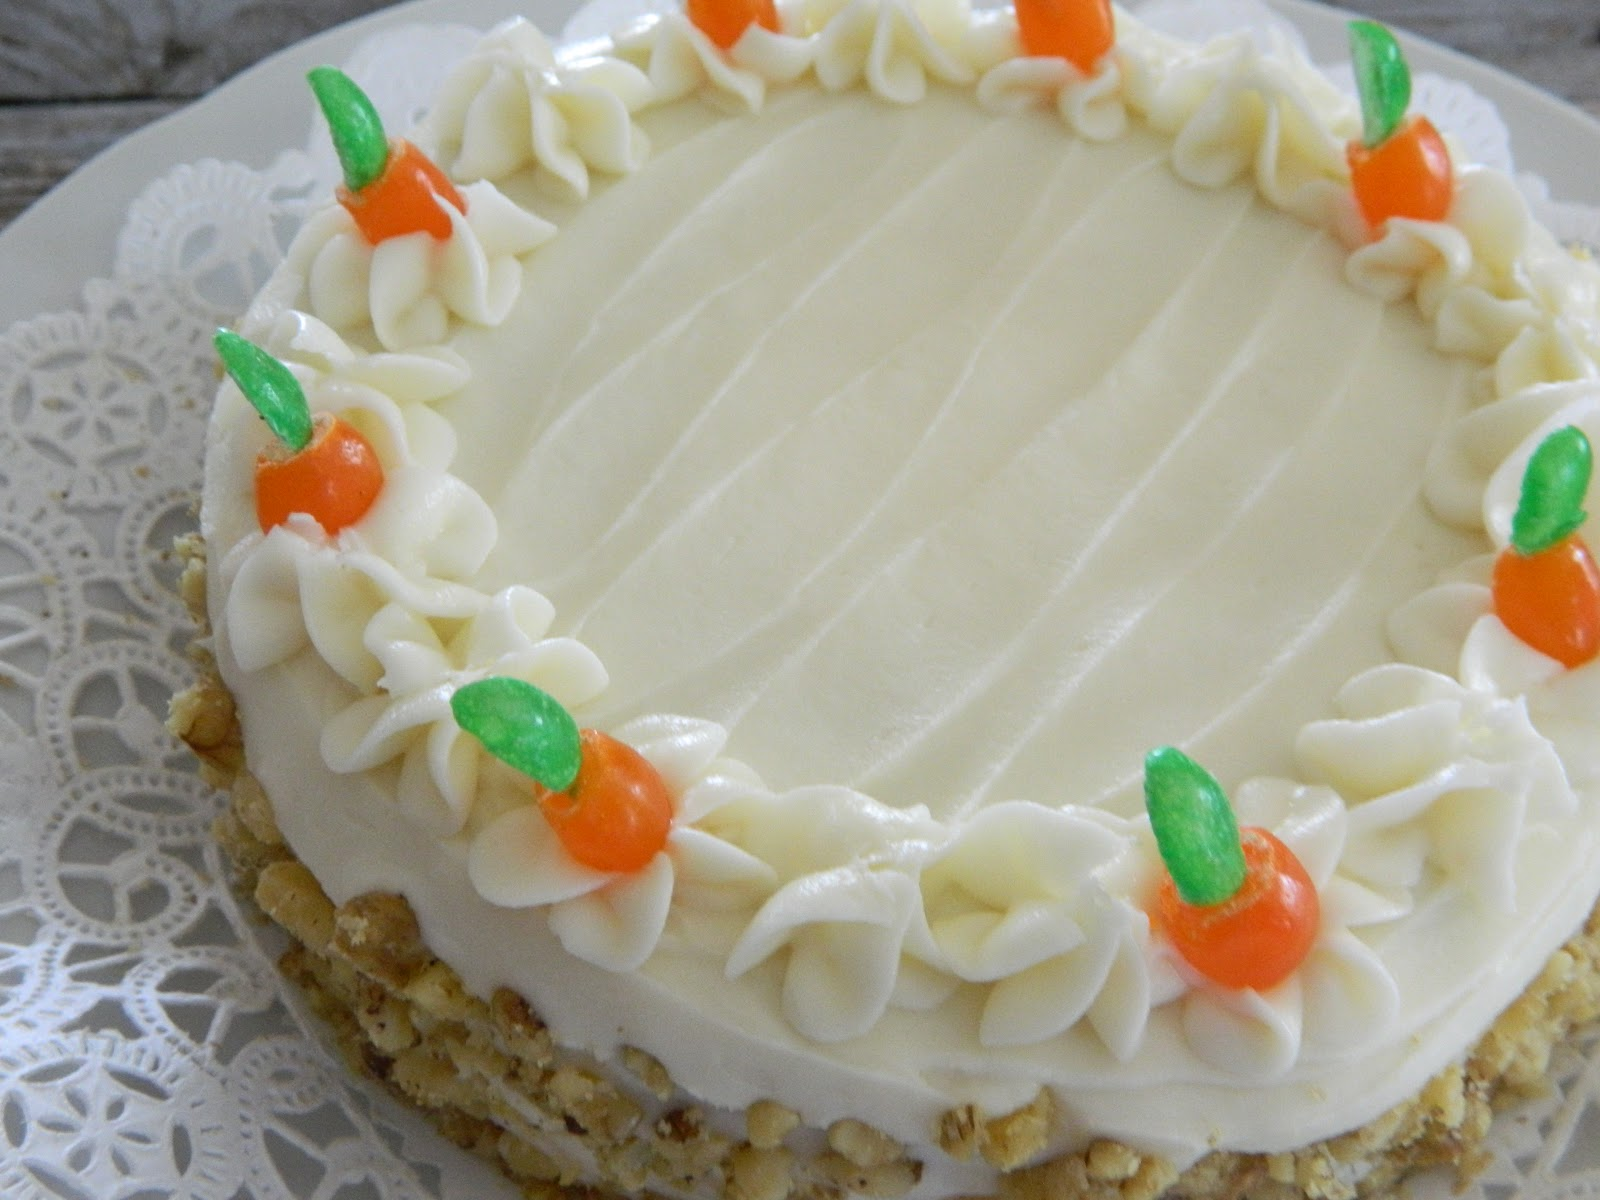 The Wednesday Baker: CARROT CAKE WITH CREAM CHEESE FROSTING